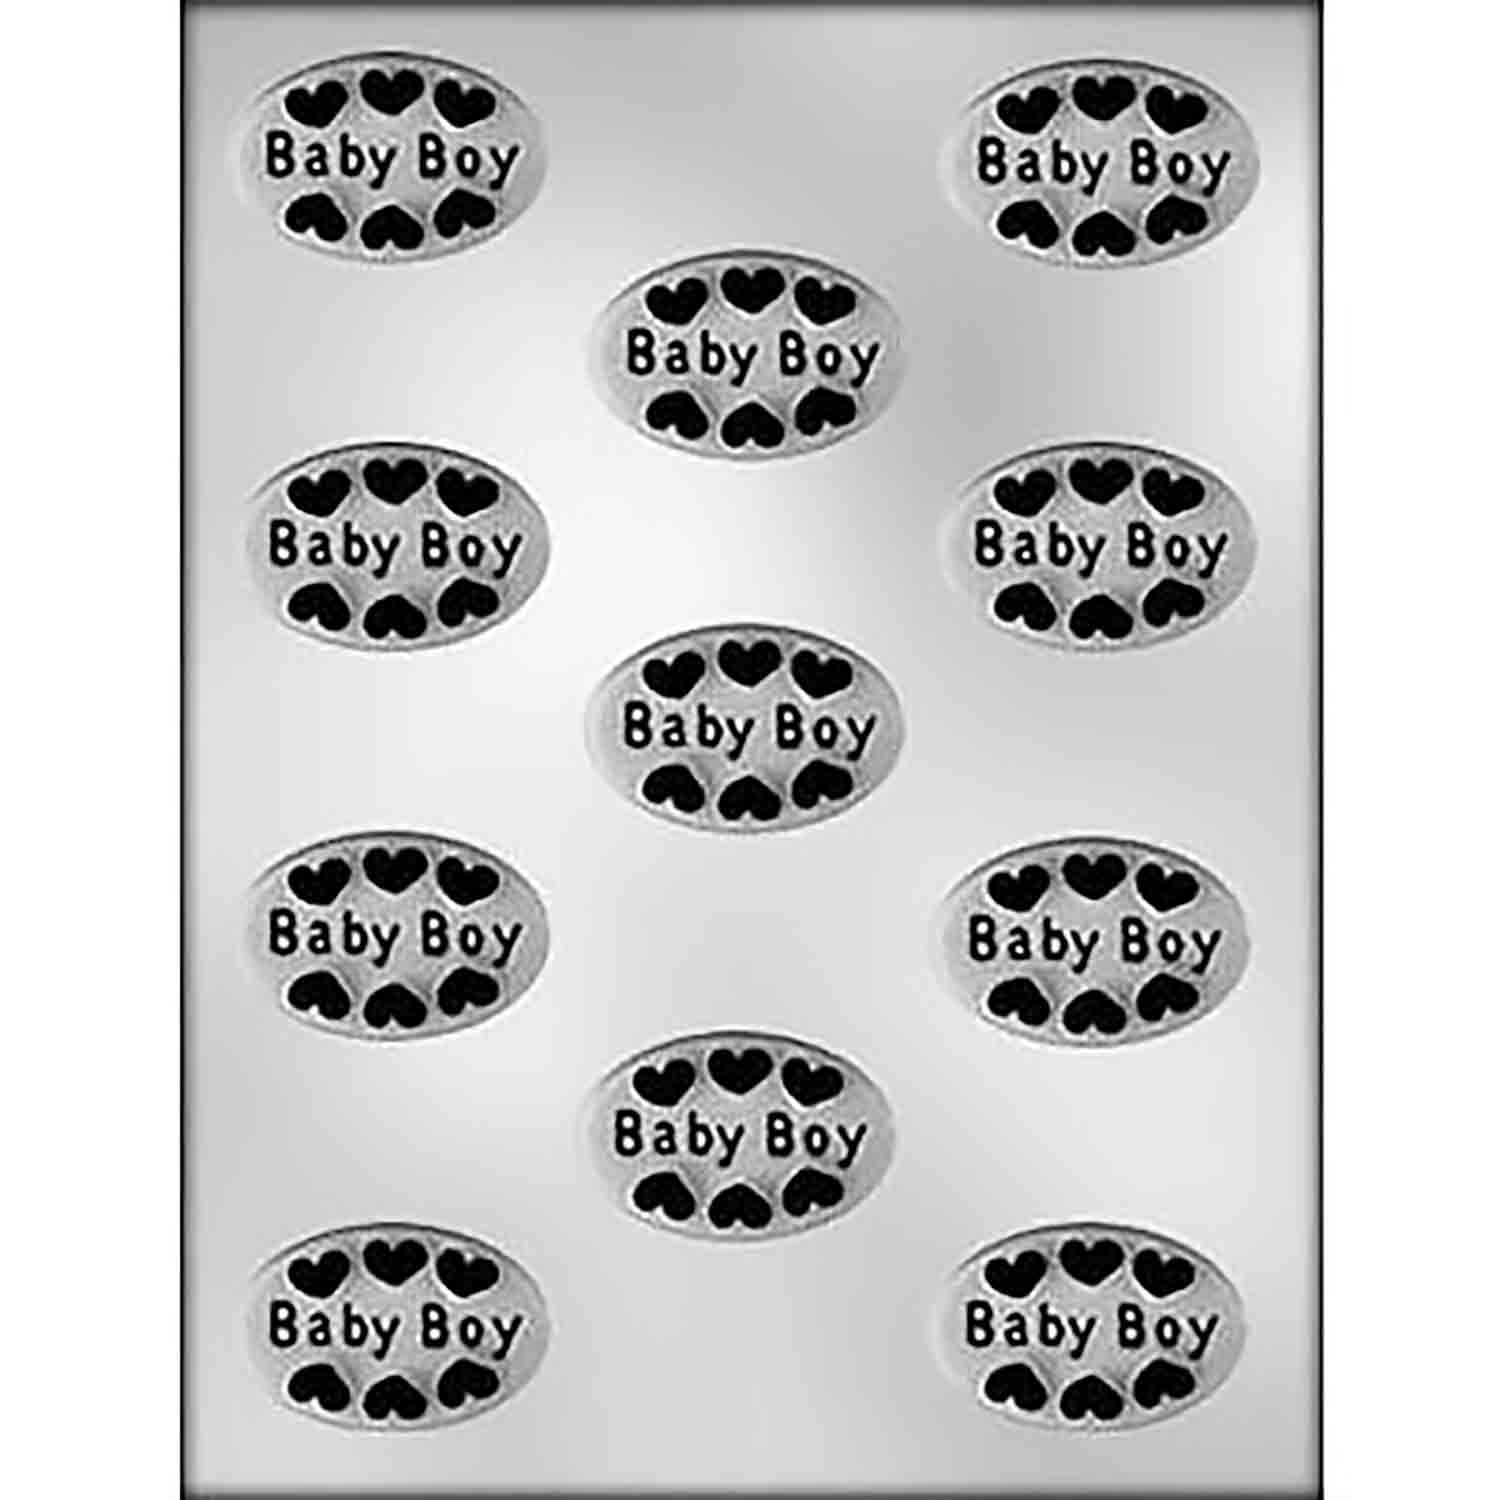 Baby Boy with Hearts Mold